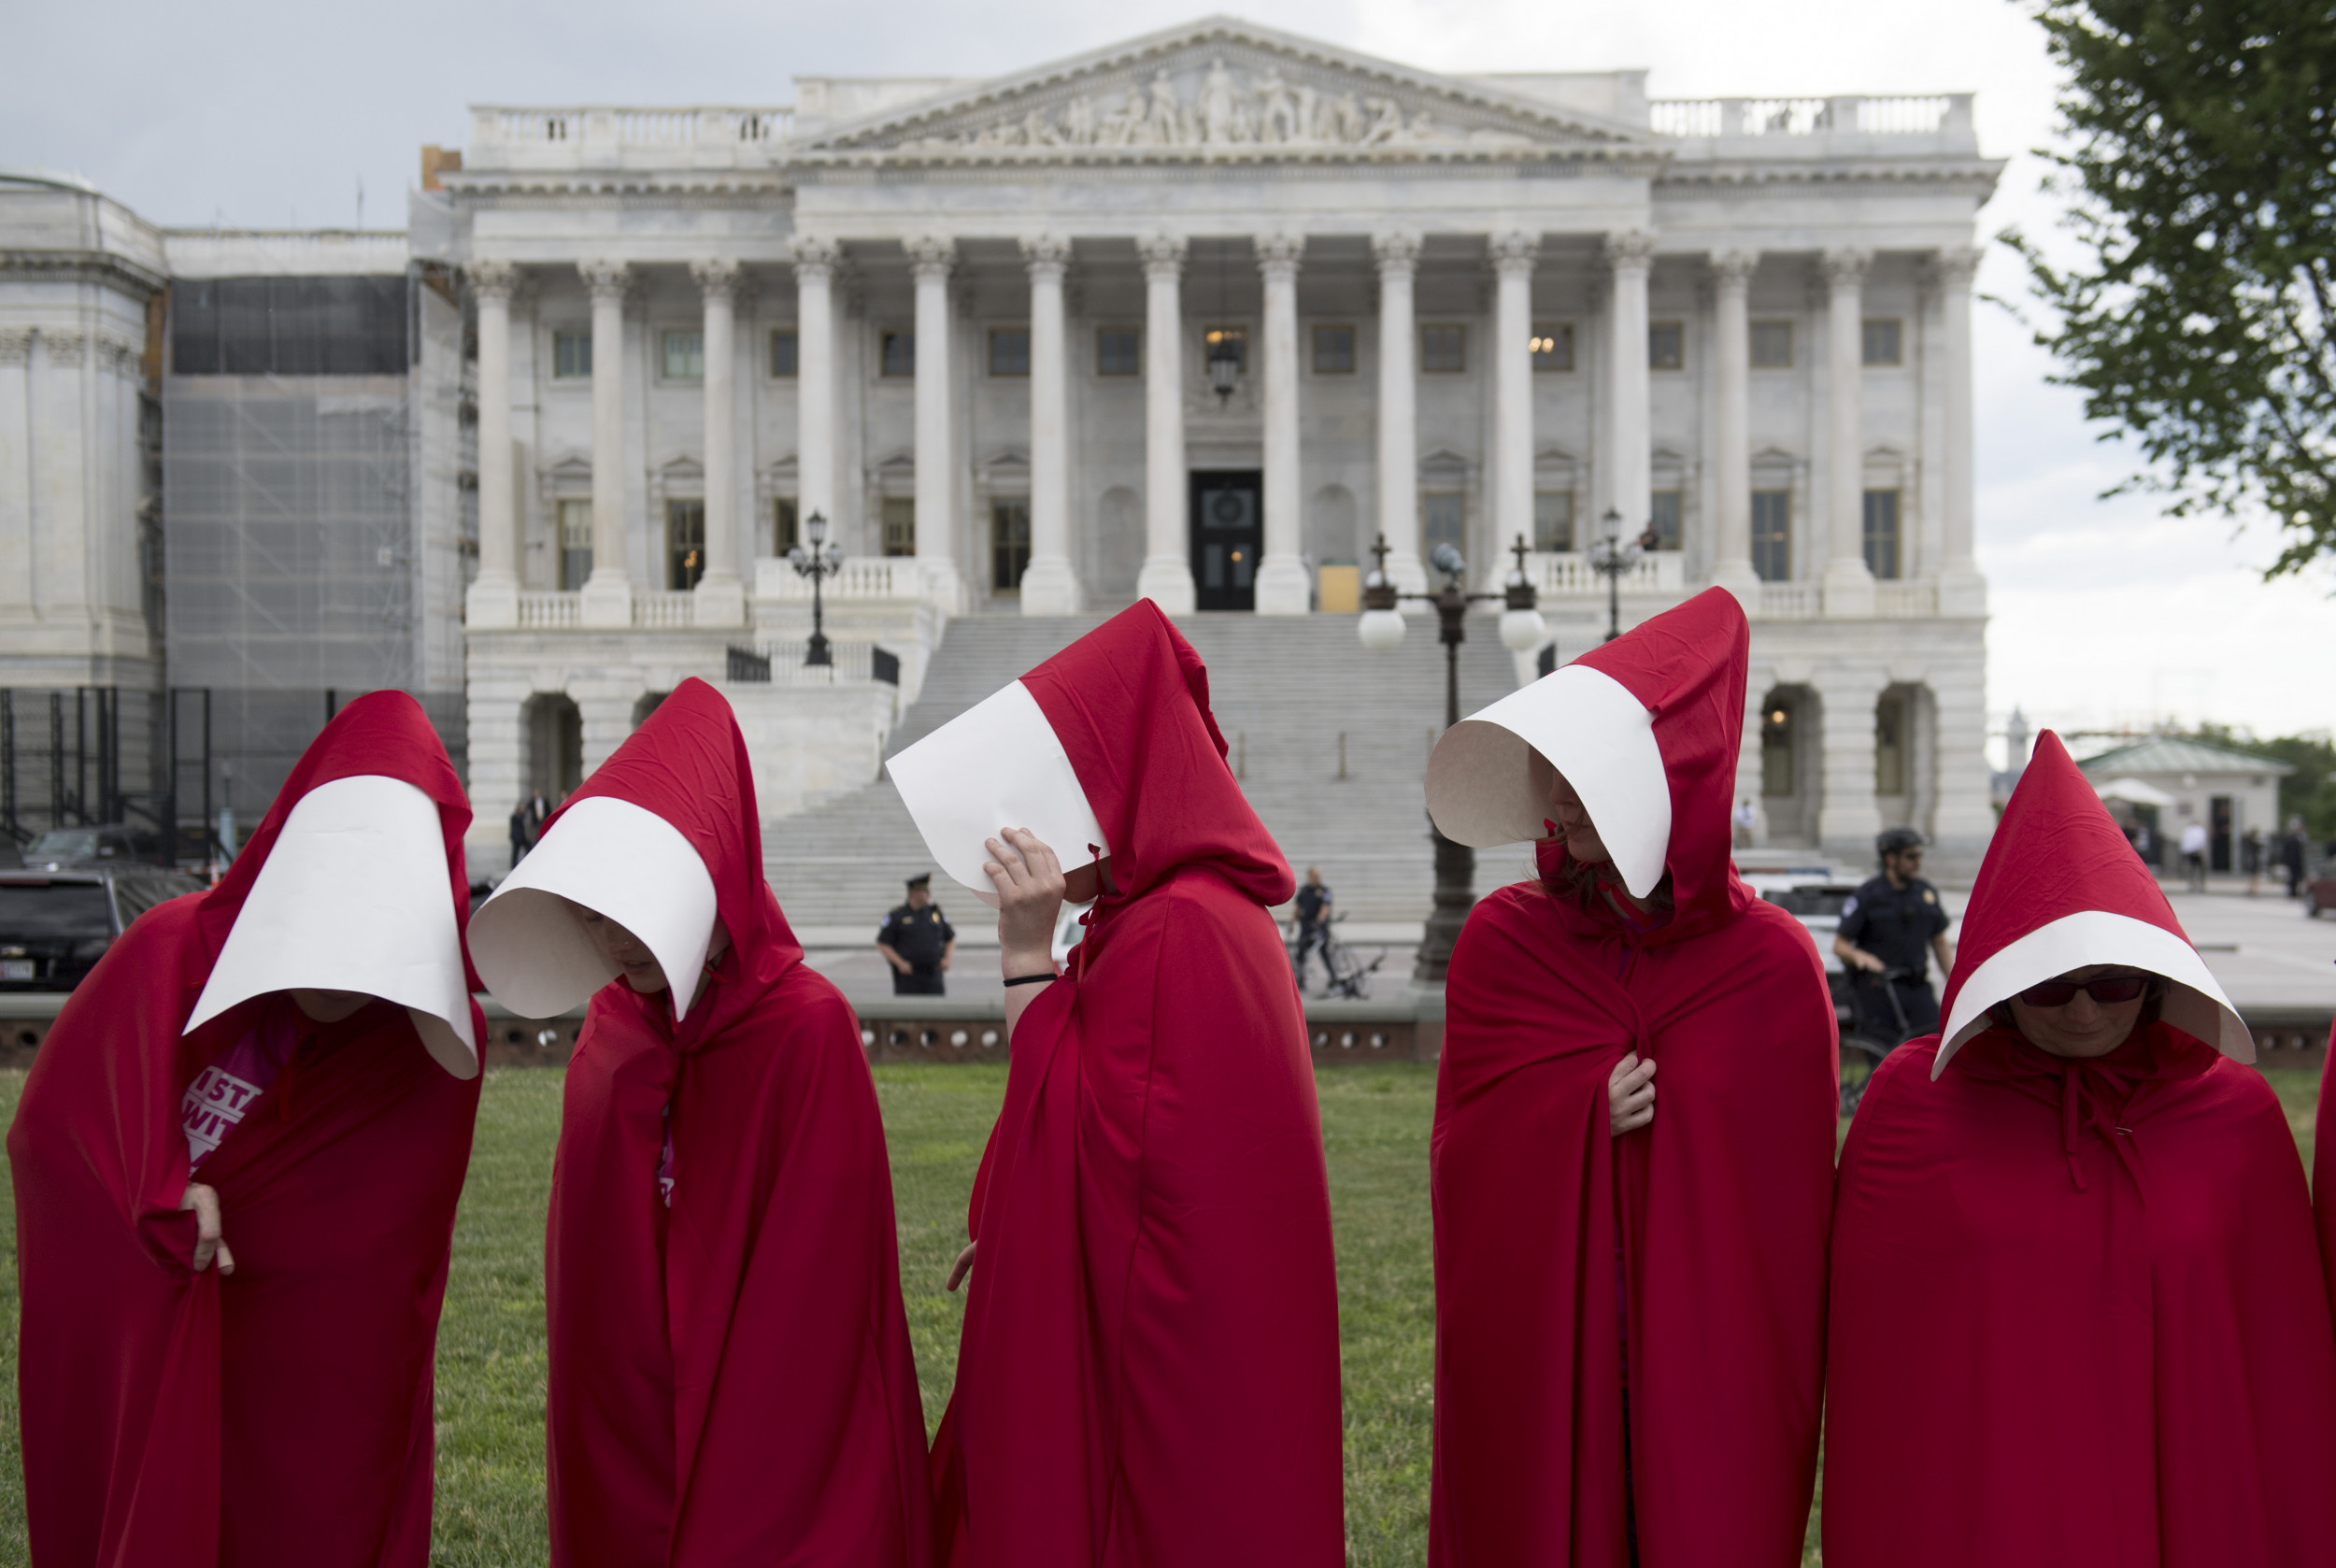 How Charismatic Catholic Groups Like Amy Coney Barrett's People of Praise  Inspired 'The Handmaid's Tale'